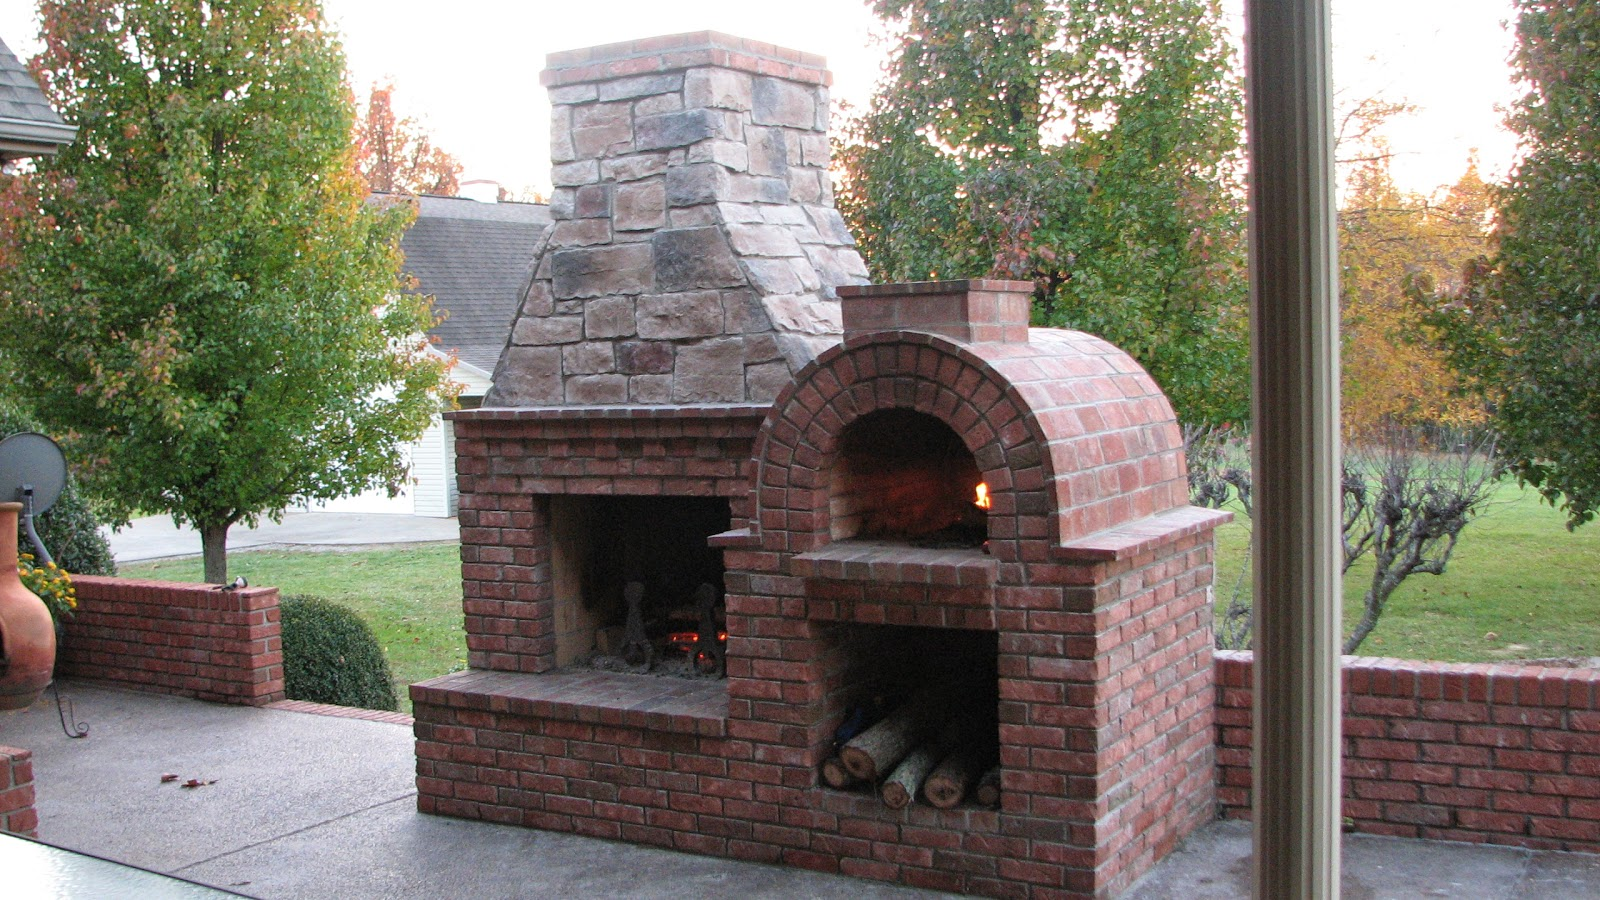 Amazing Riley Wood Fired Brick Pizza Oven And Fireplace Combo From A DIY Master In  Kentucky